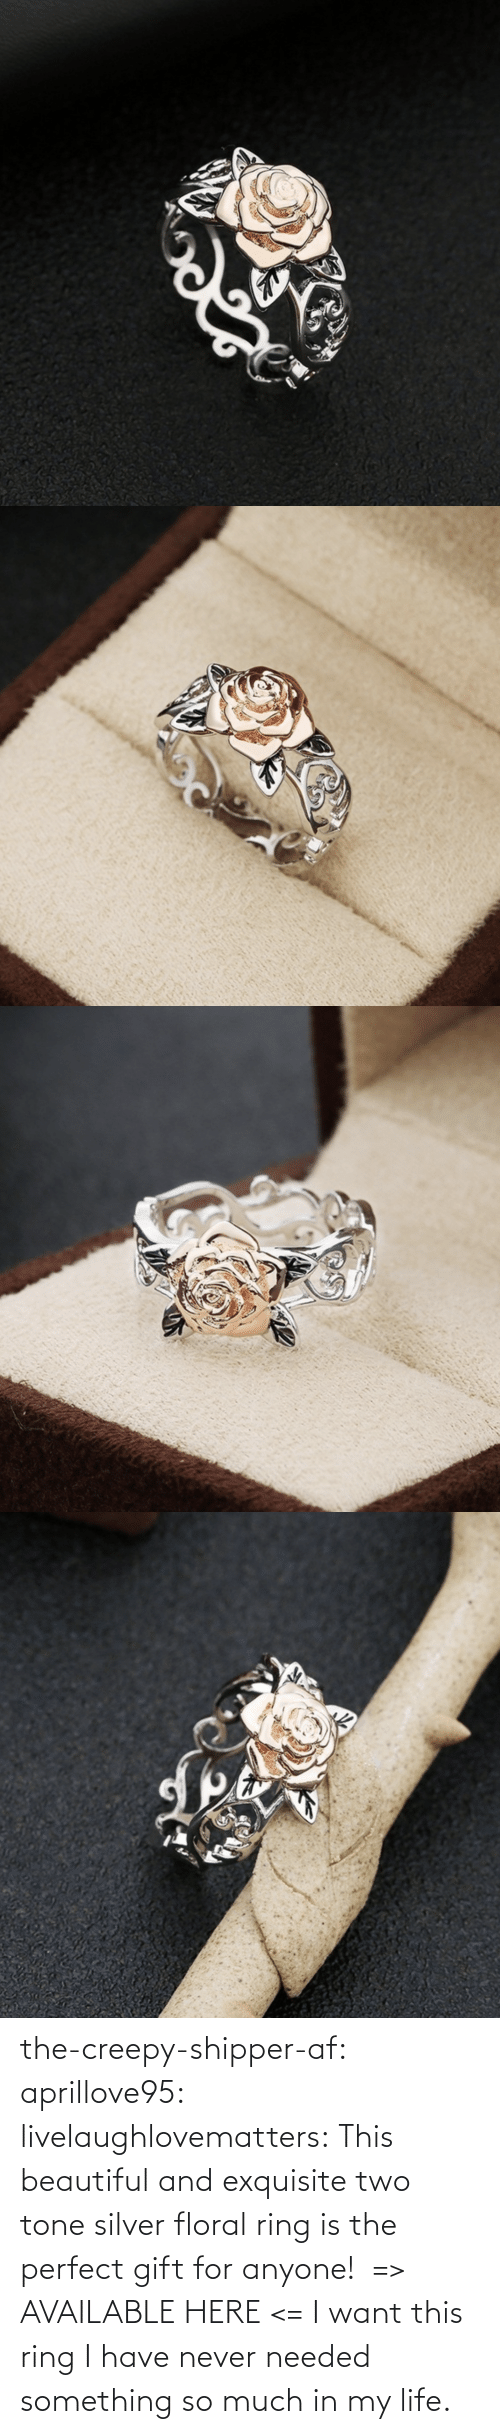 Have: the-creepy-shipper-af: aprillove95:  livelaughlovematters:  This beautiful and exquisite two tone silver floral ring is the perfect gift for anyone!  => AVAILABLE HERE <=    I want this ring   I have never needed something so much in my life.